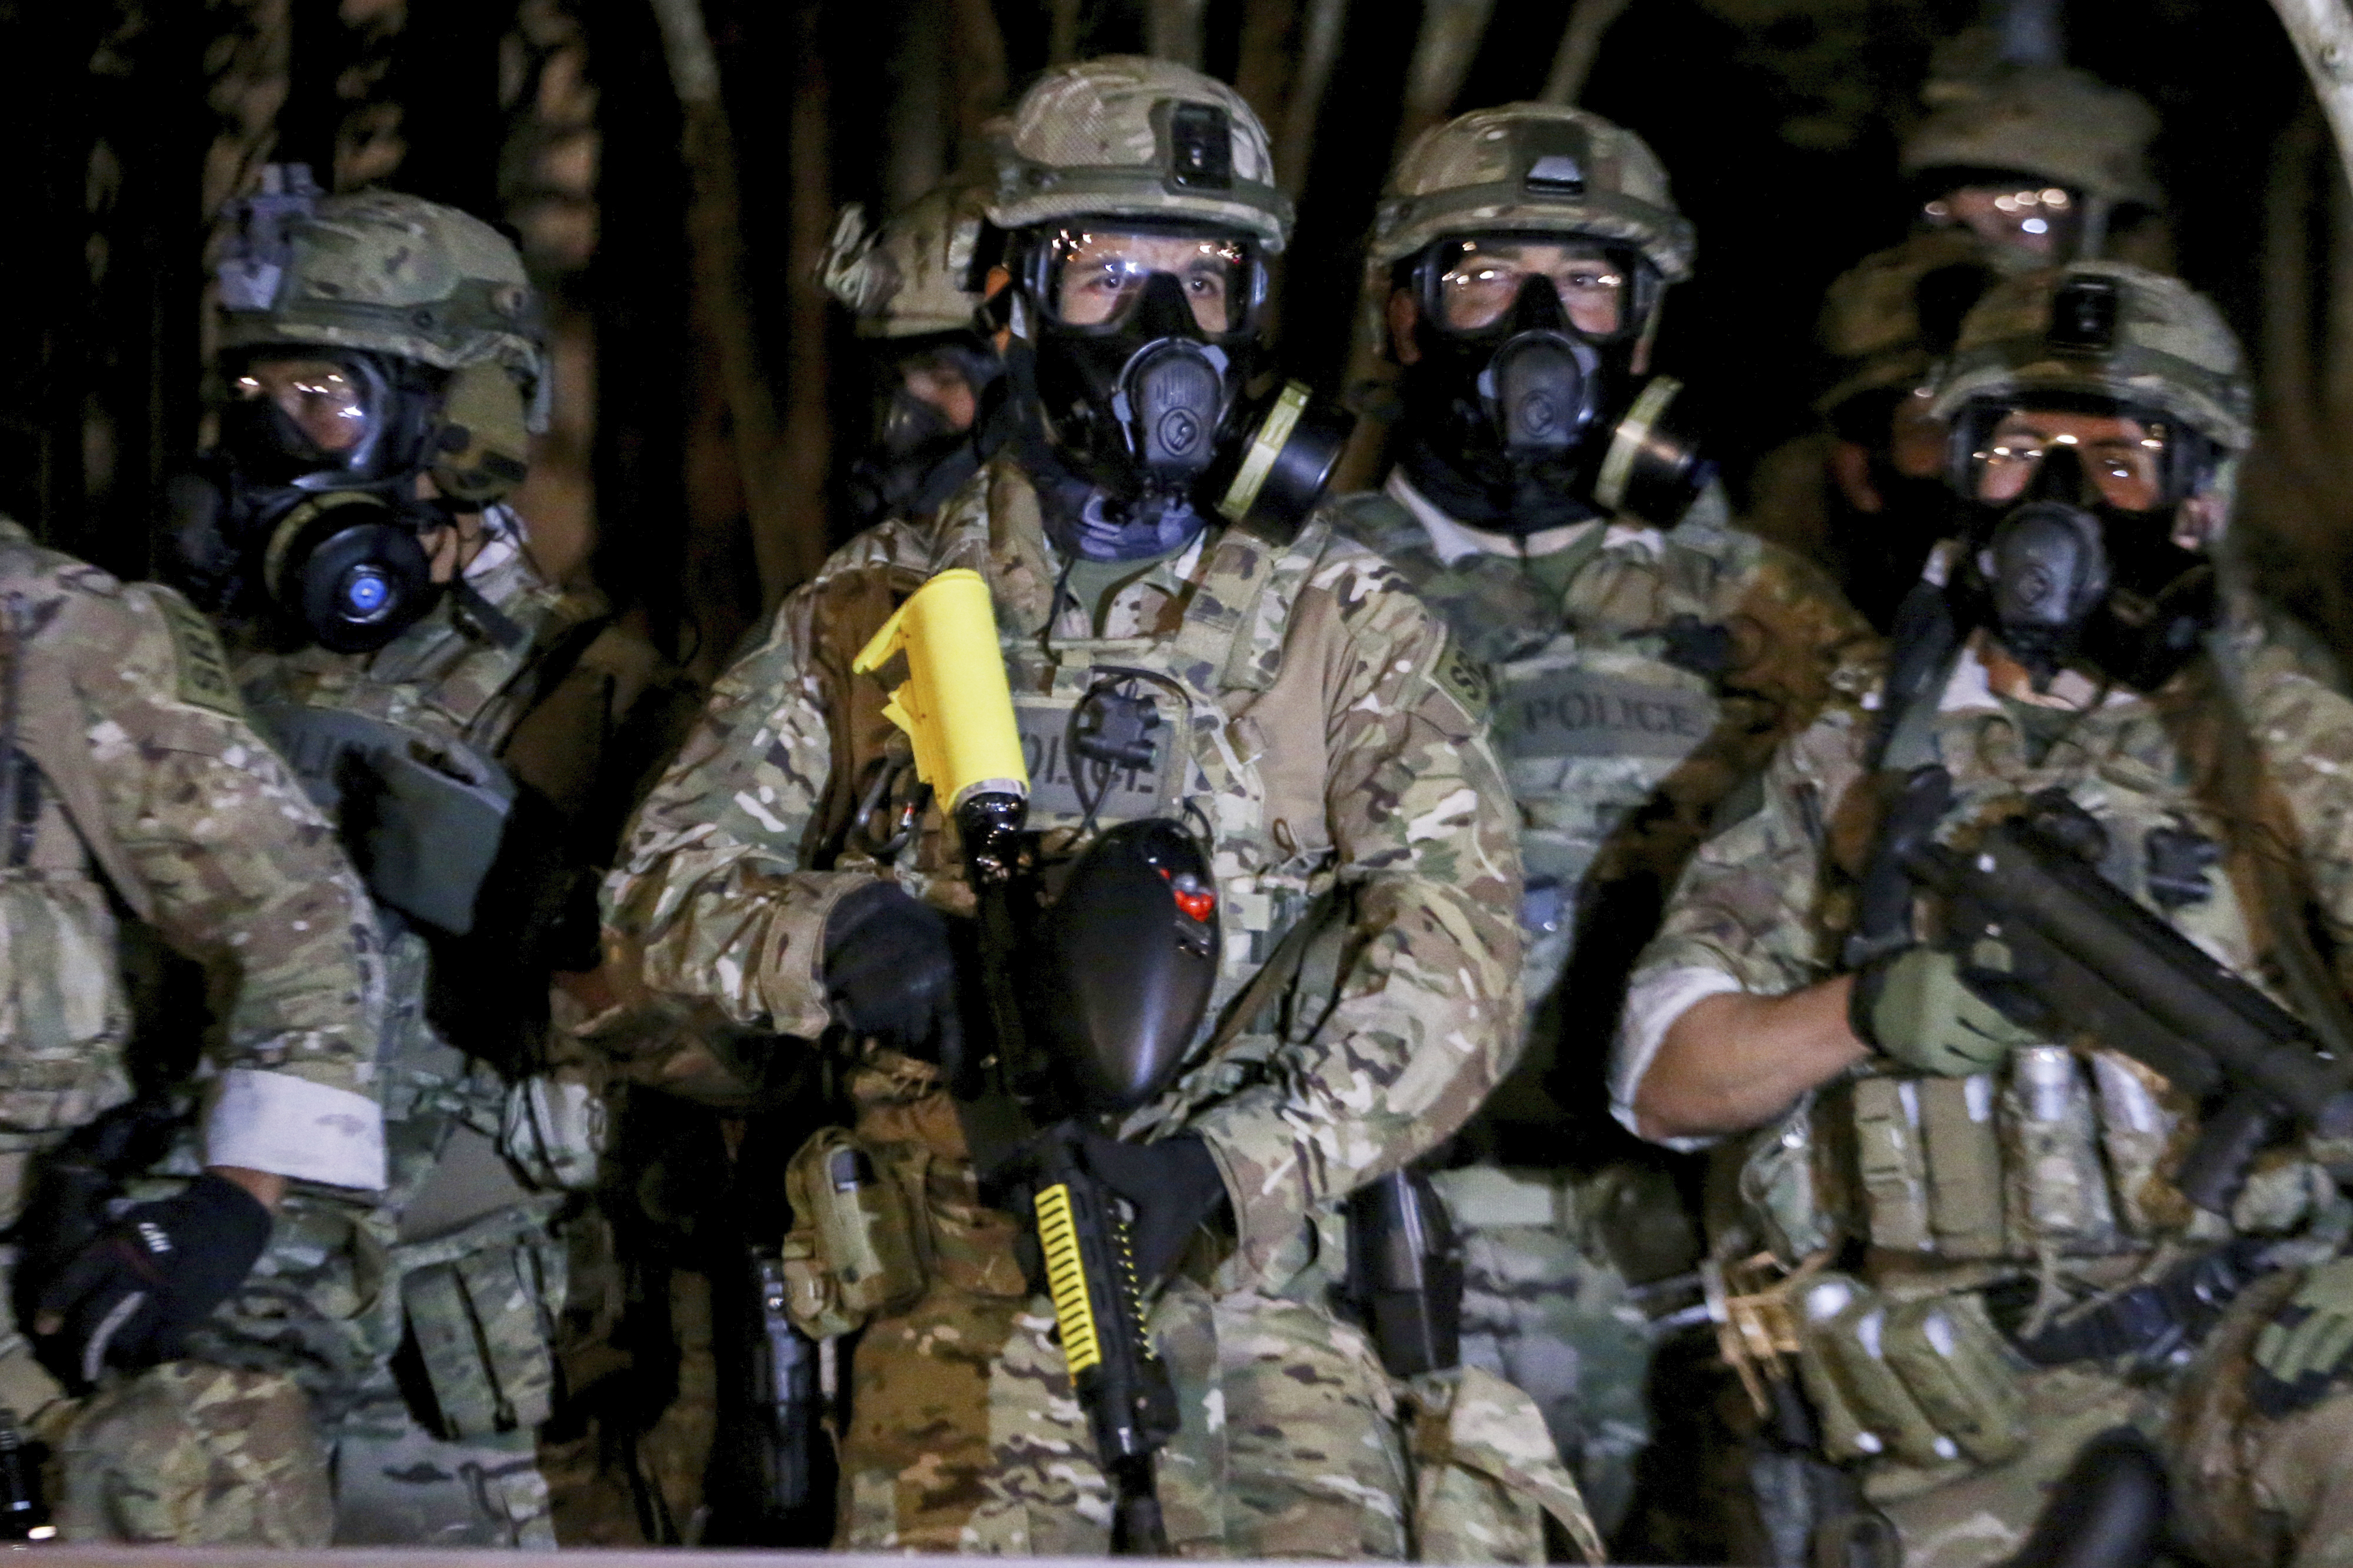 Federal officers deployed tear gas and fired less-lethal rounds into a crowd of protesters late on July 16, 2020 in Portland, Ore.